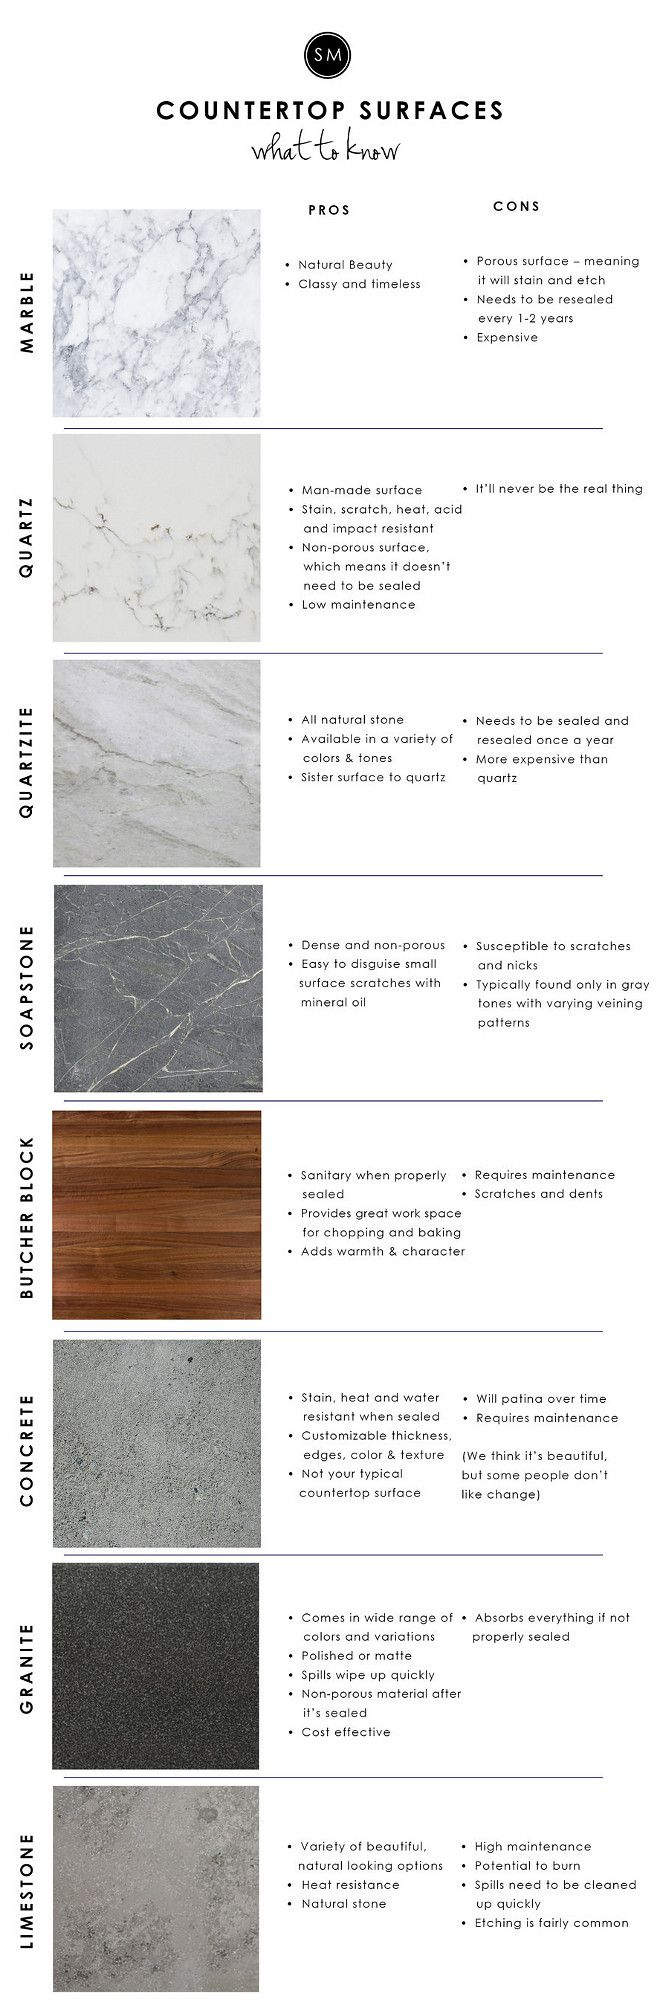 Find This Pin And More On Home Bunch Interiors Blog Countertop Types: